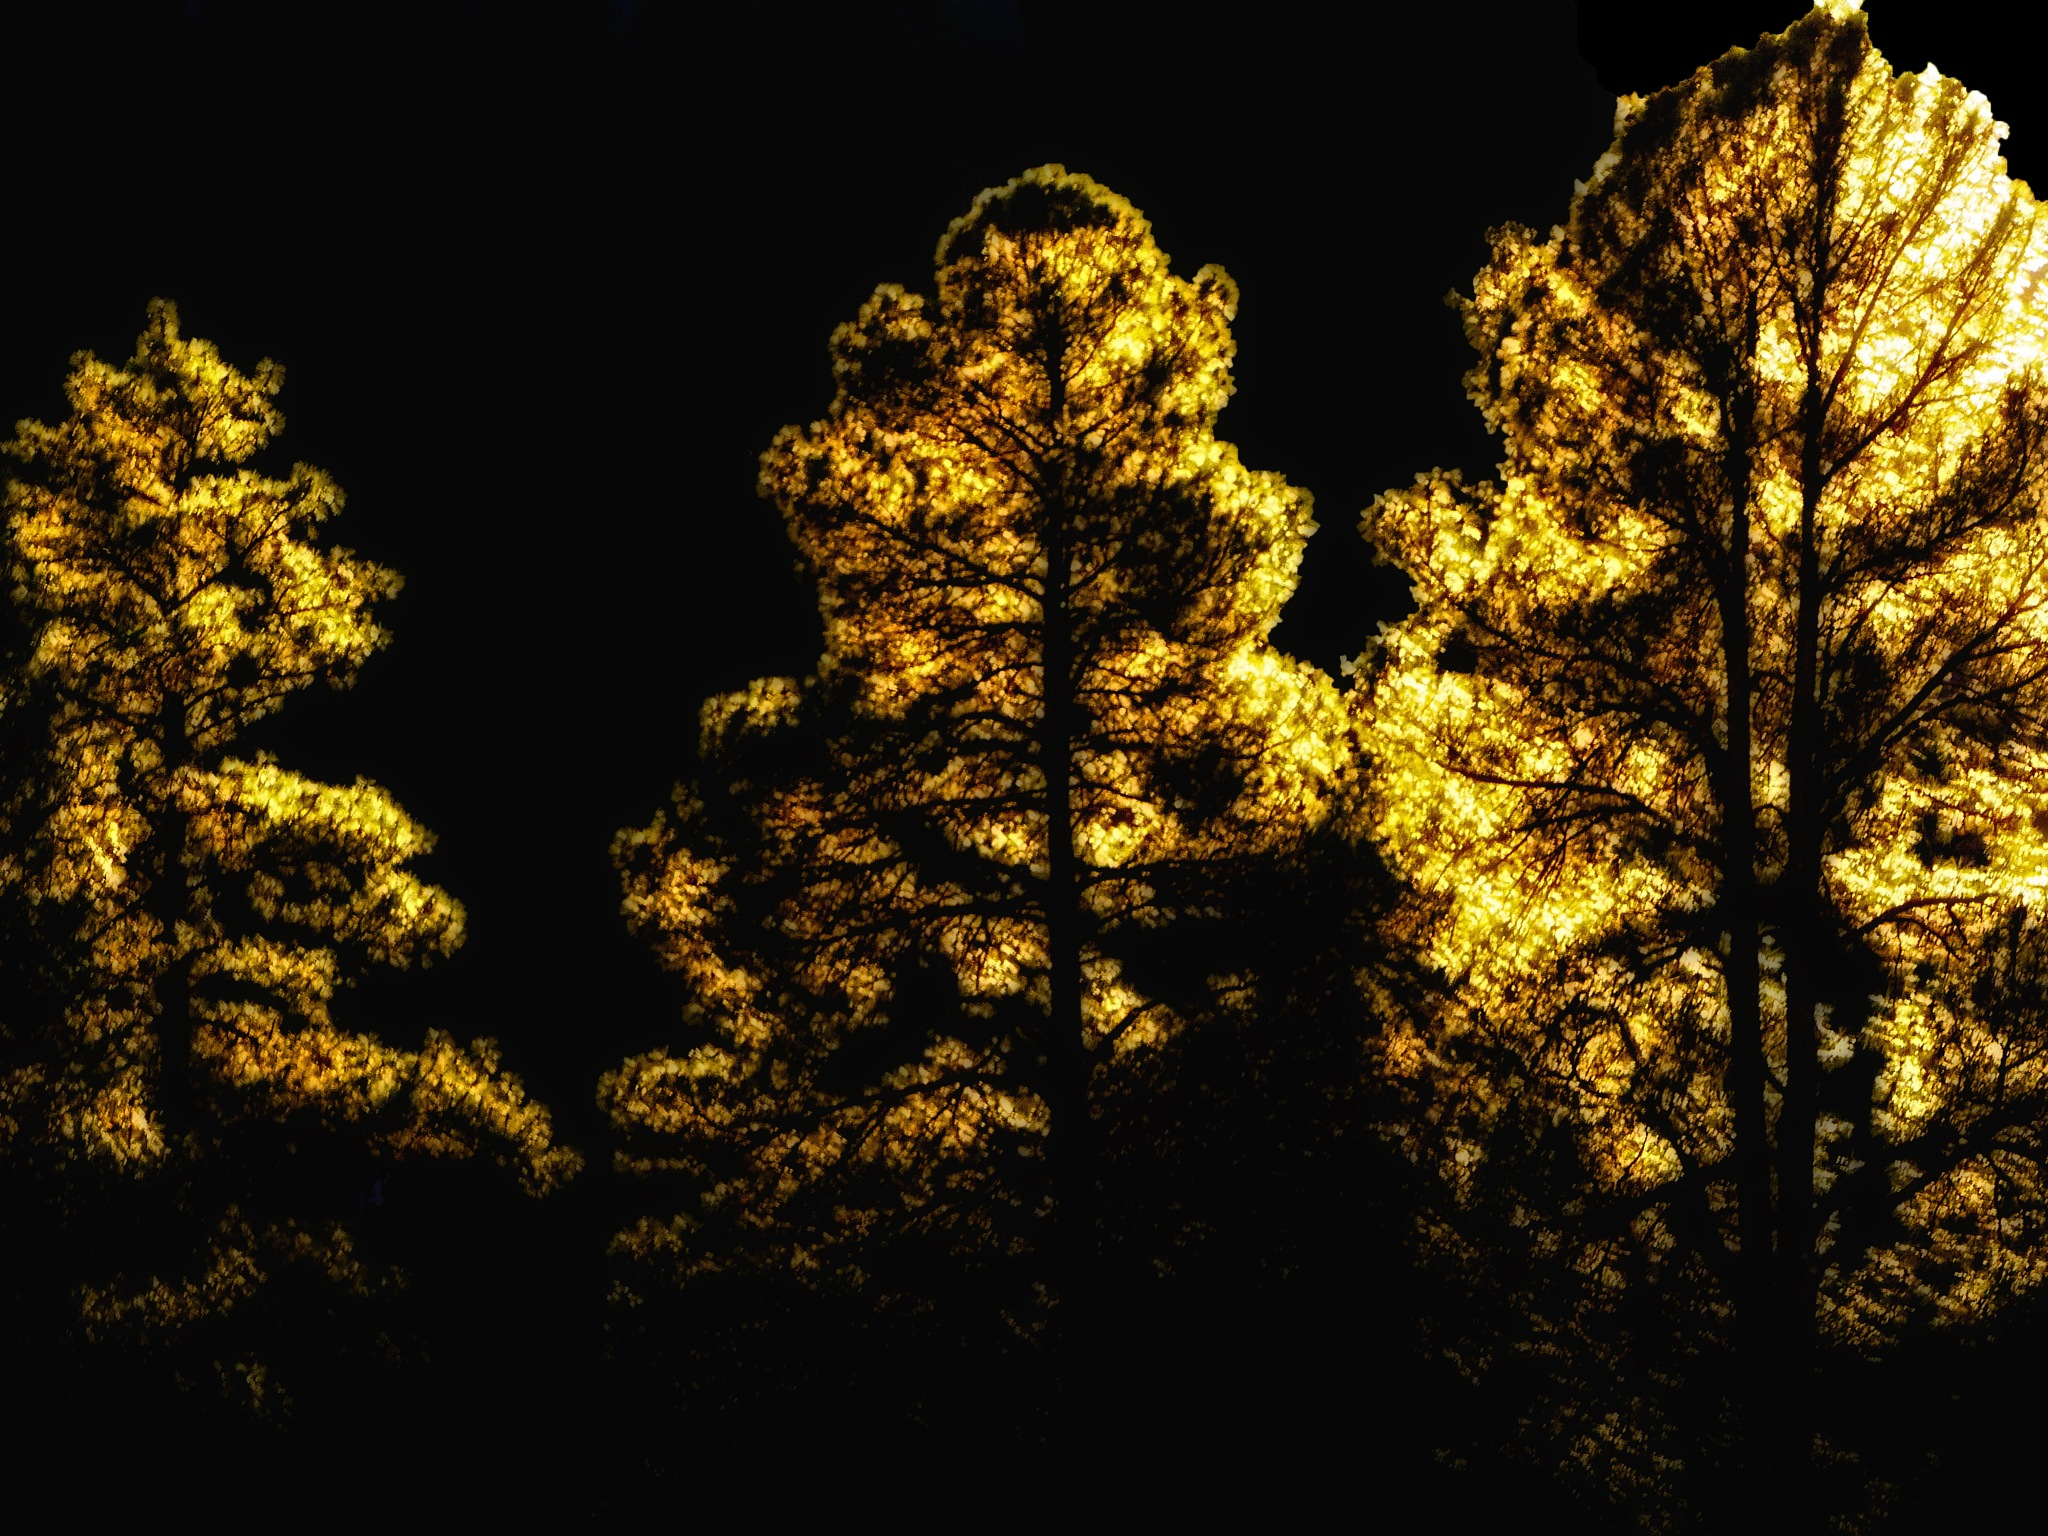 Backlit Pines by David Walters